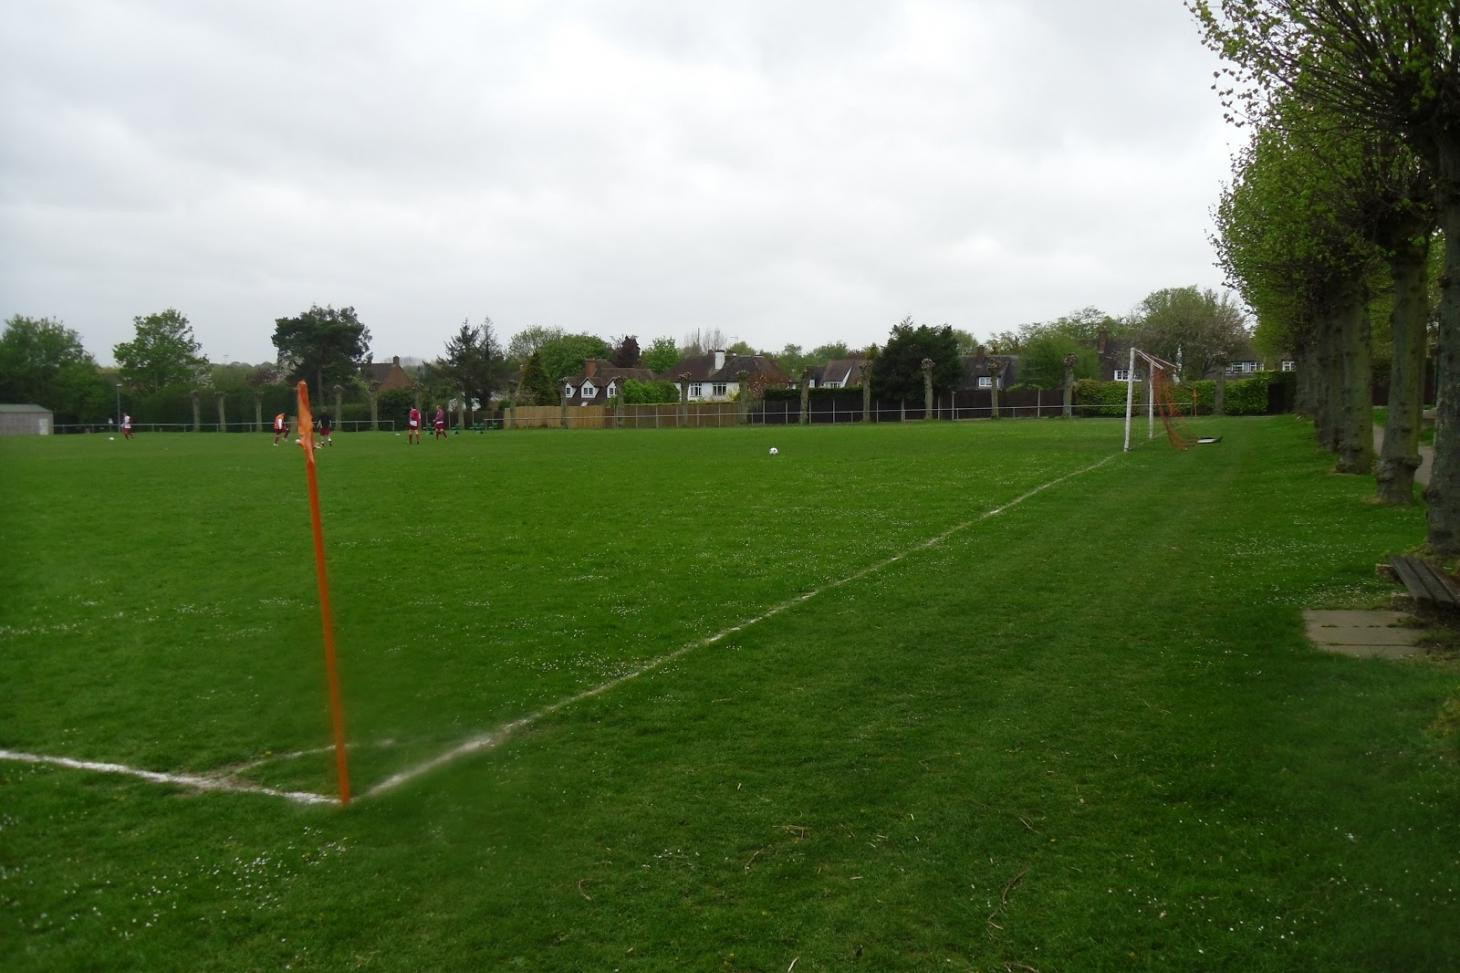 North Enfield Recreation Ground 11 a side | Grass football pitch